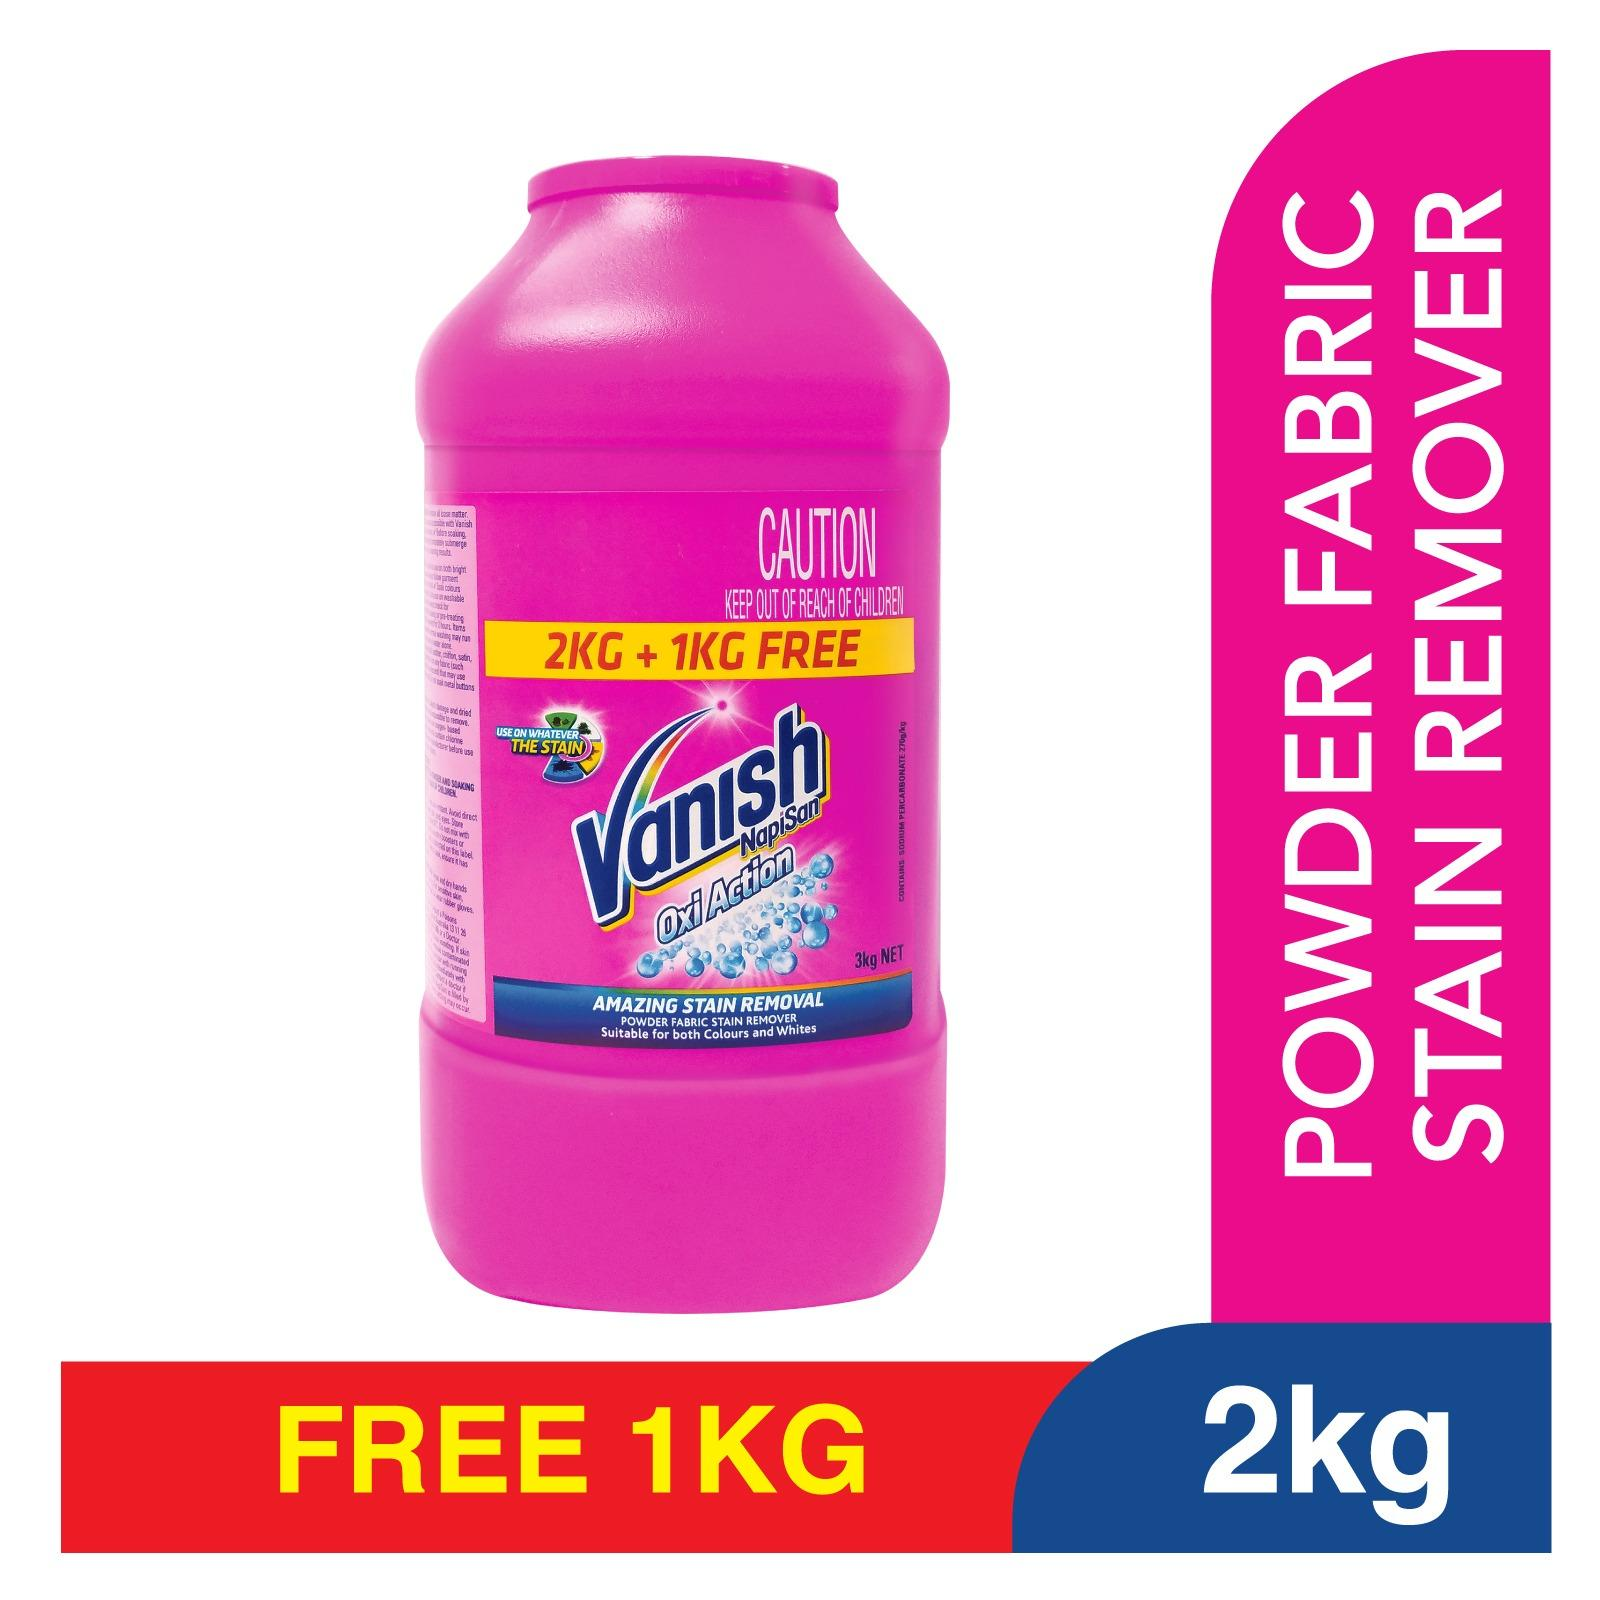 Discount Vanish Napisan Oxi Action Powder 2 Kg 1 Kg Free Laundry Stain Remover Singapore